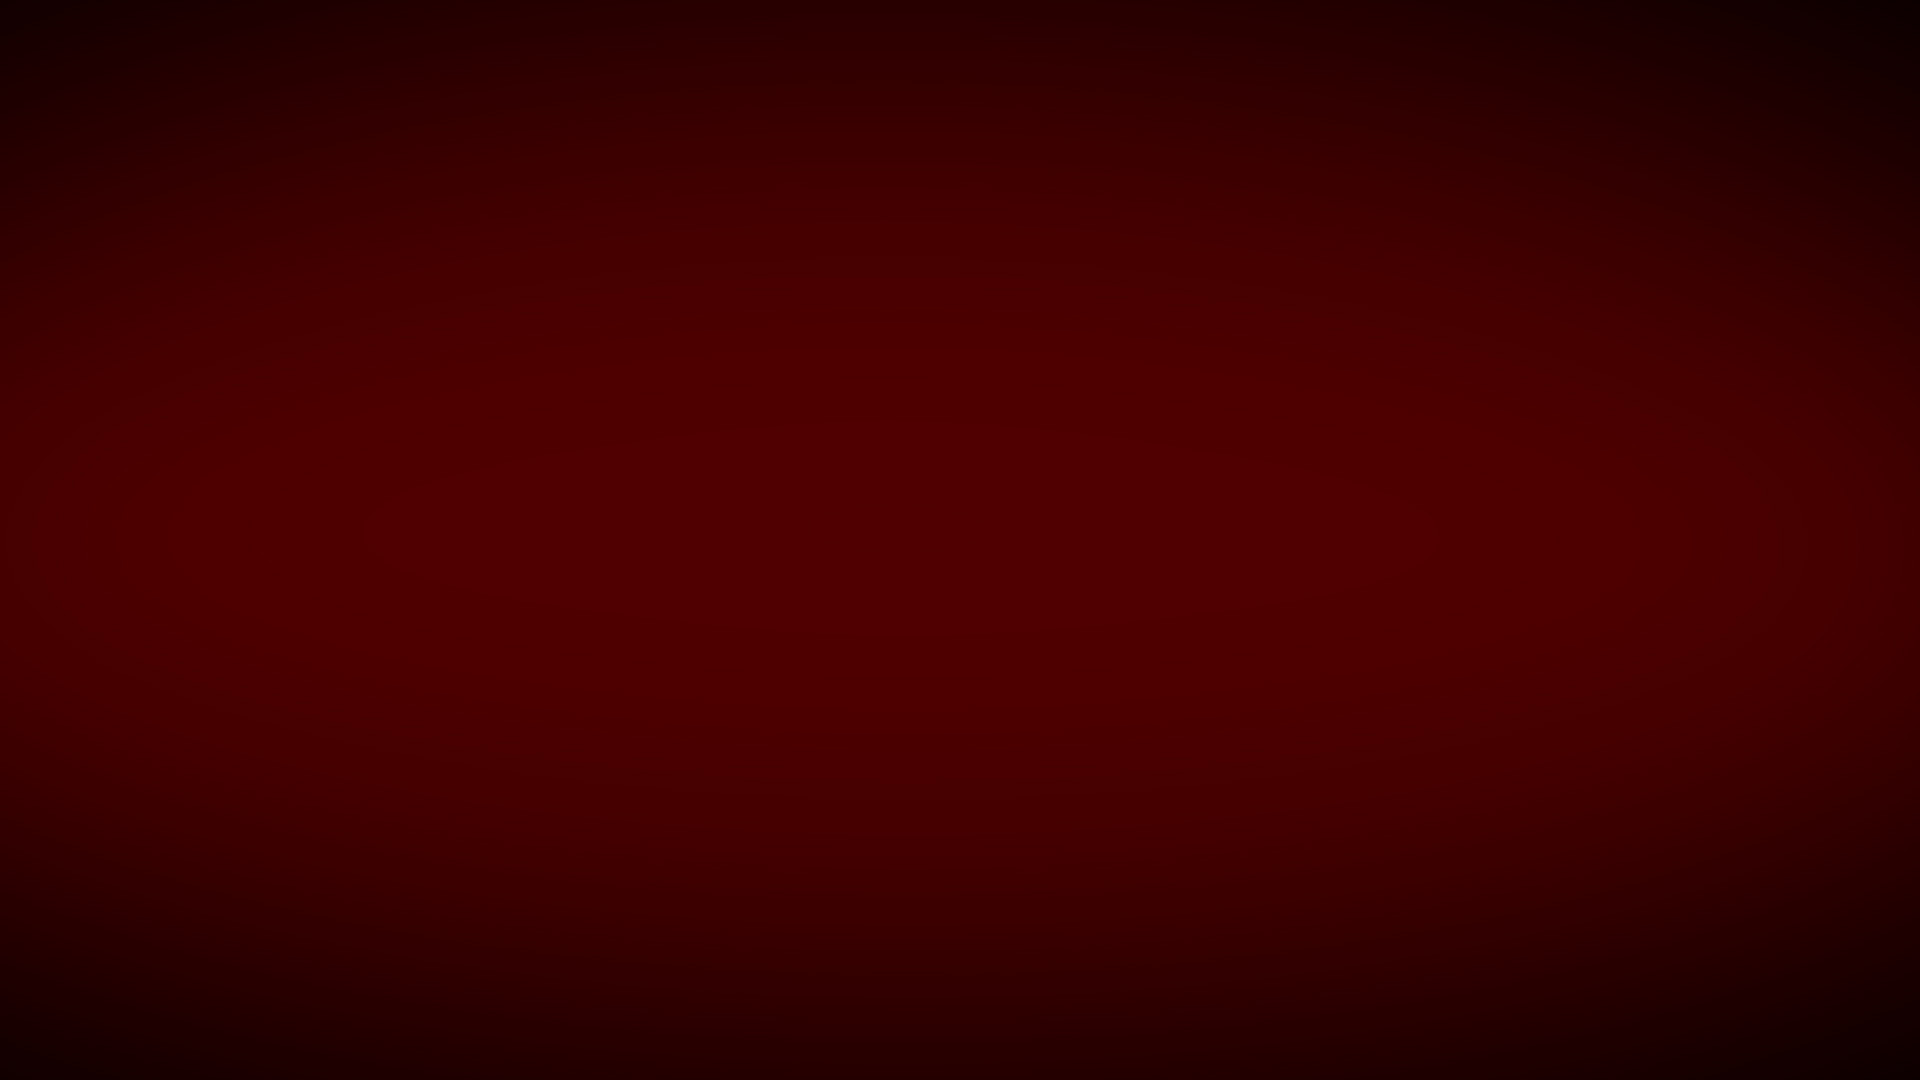 Maroon backgrounds 58 images - Maroon wallpaper ...